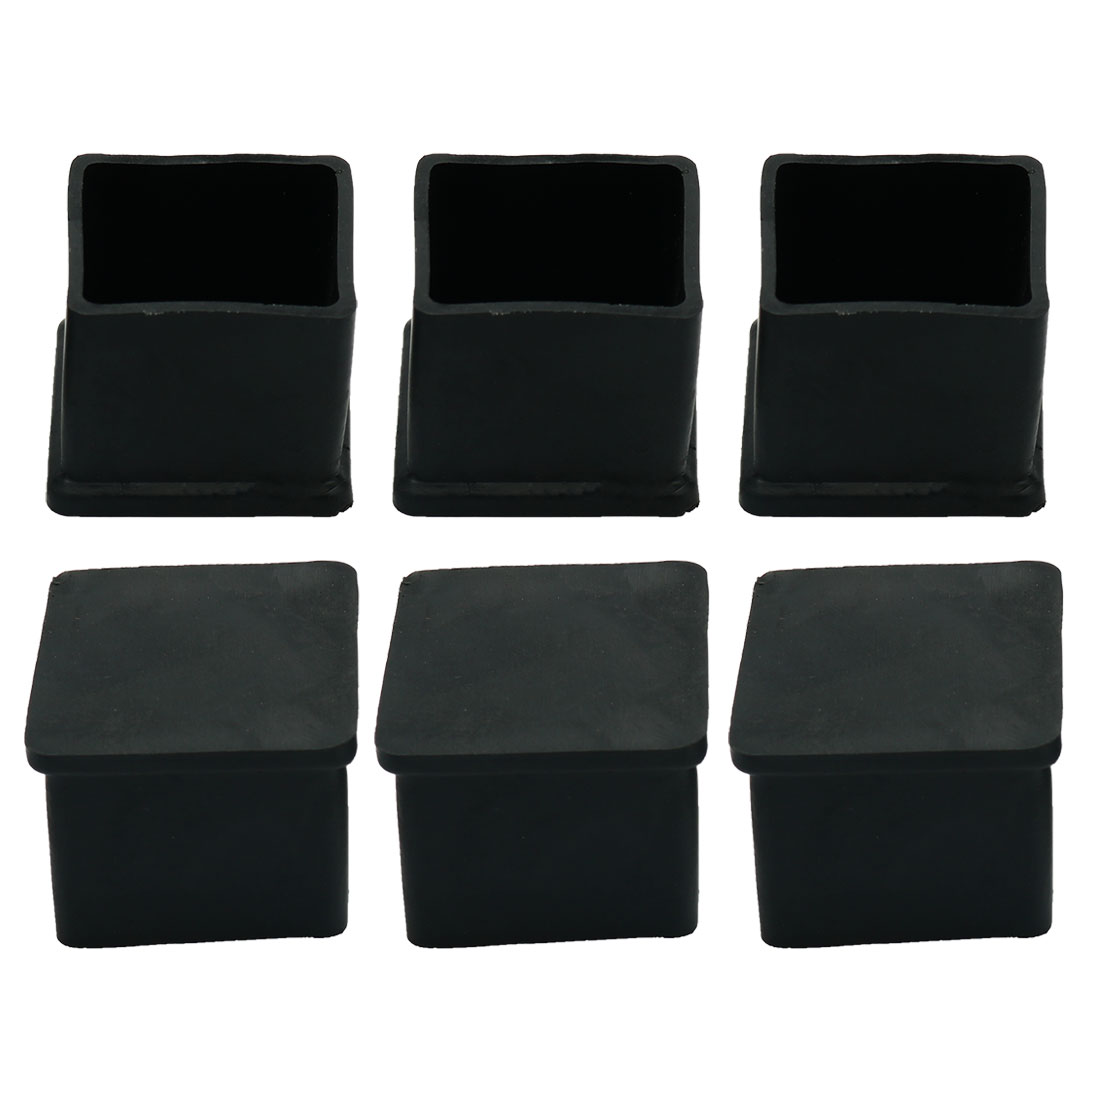 Rubber Furniture Leg Chair Feet Protection Pad 25mmx25mm 6Pcs Black